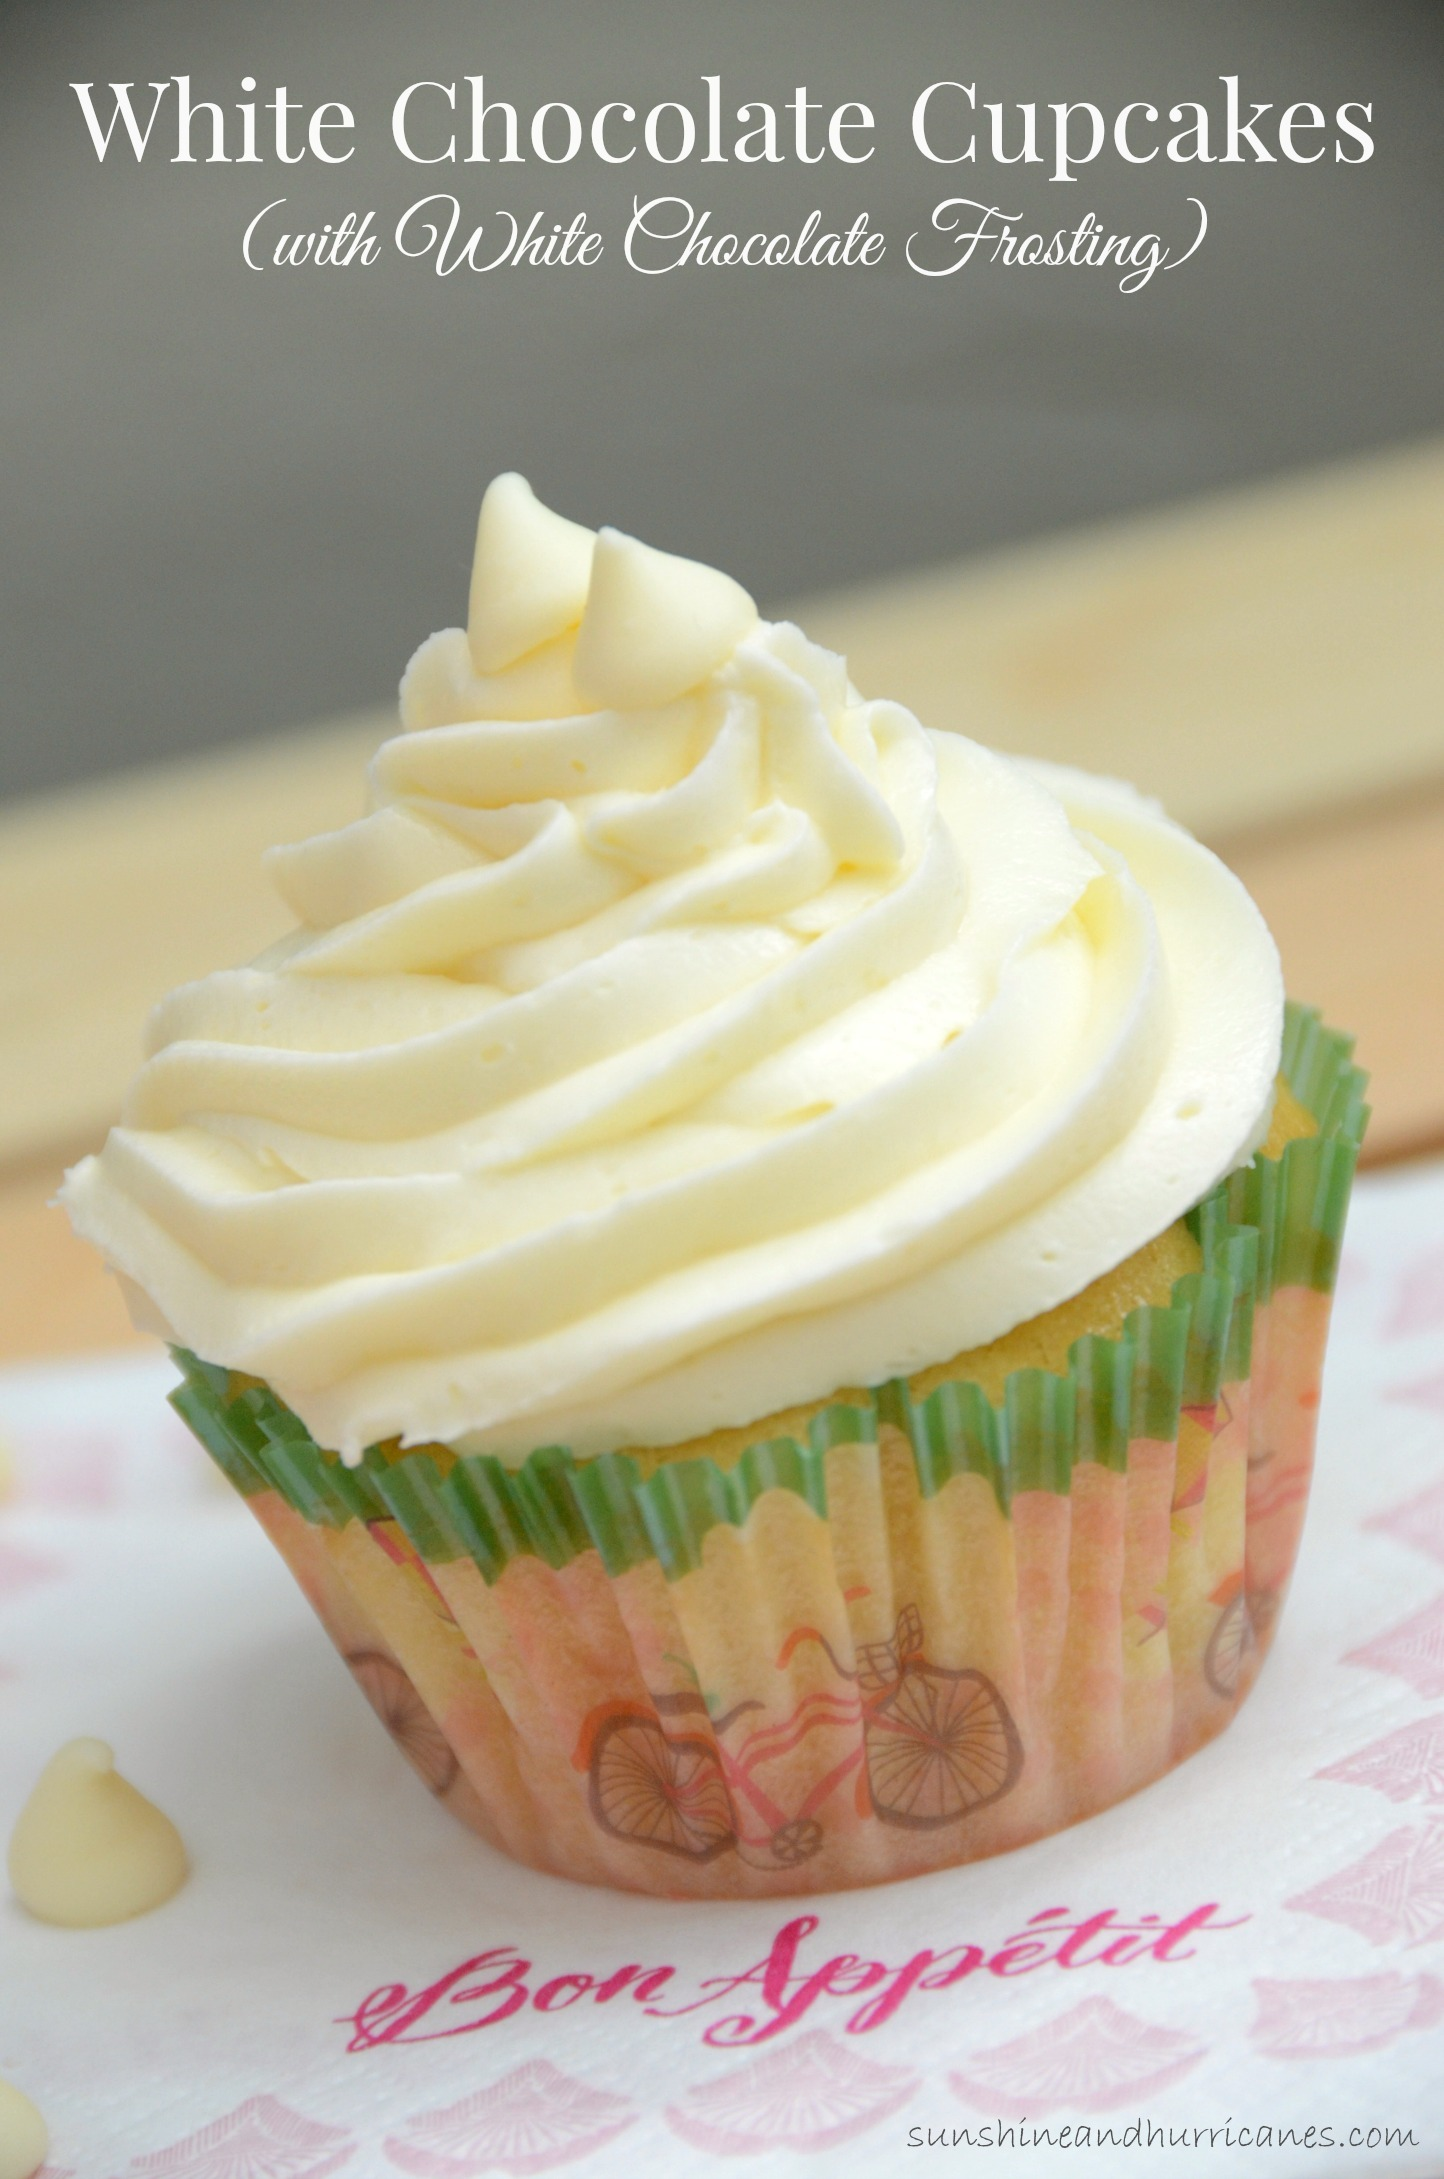 ... White Chocolate Cupcakes with White Chocolate Frostings